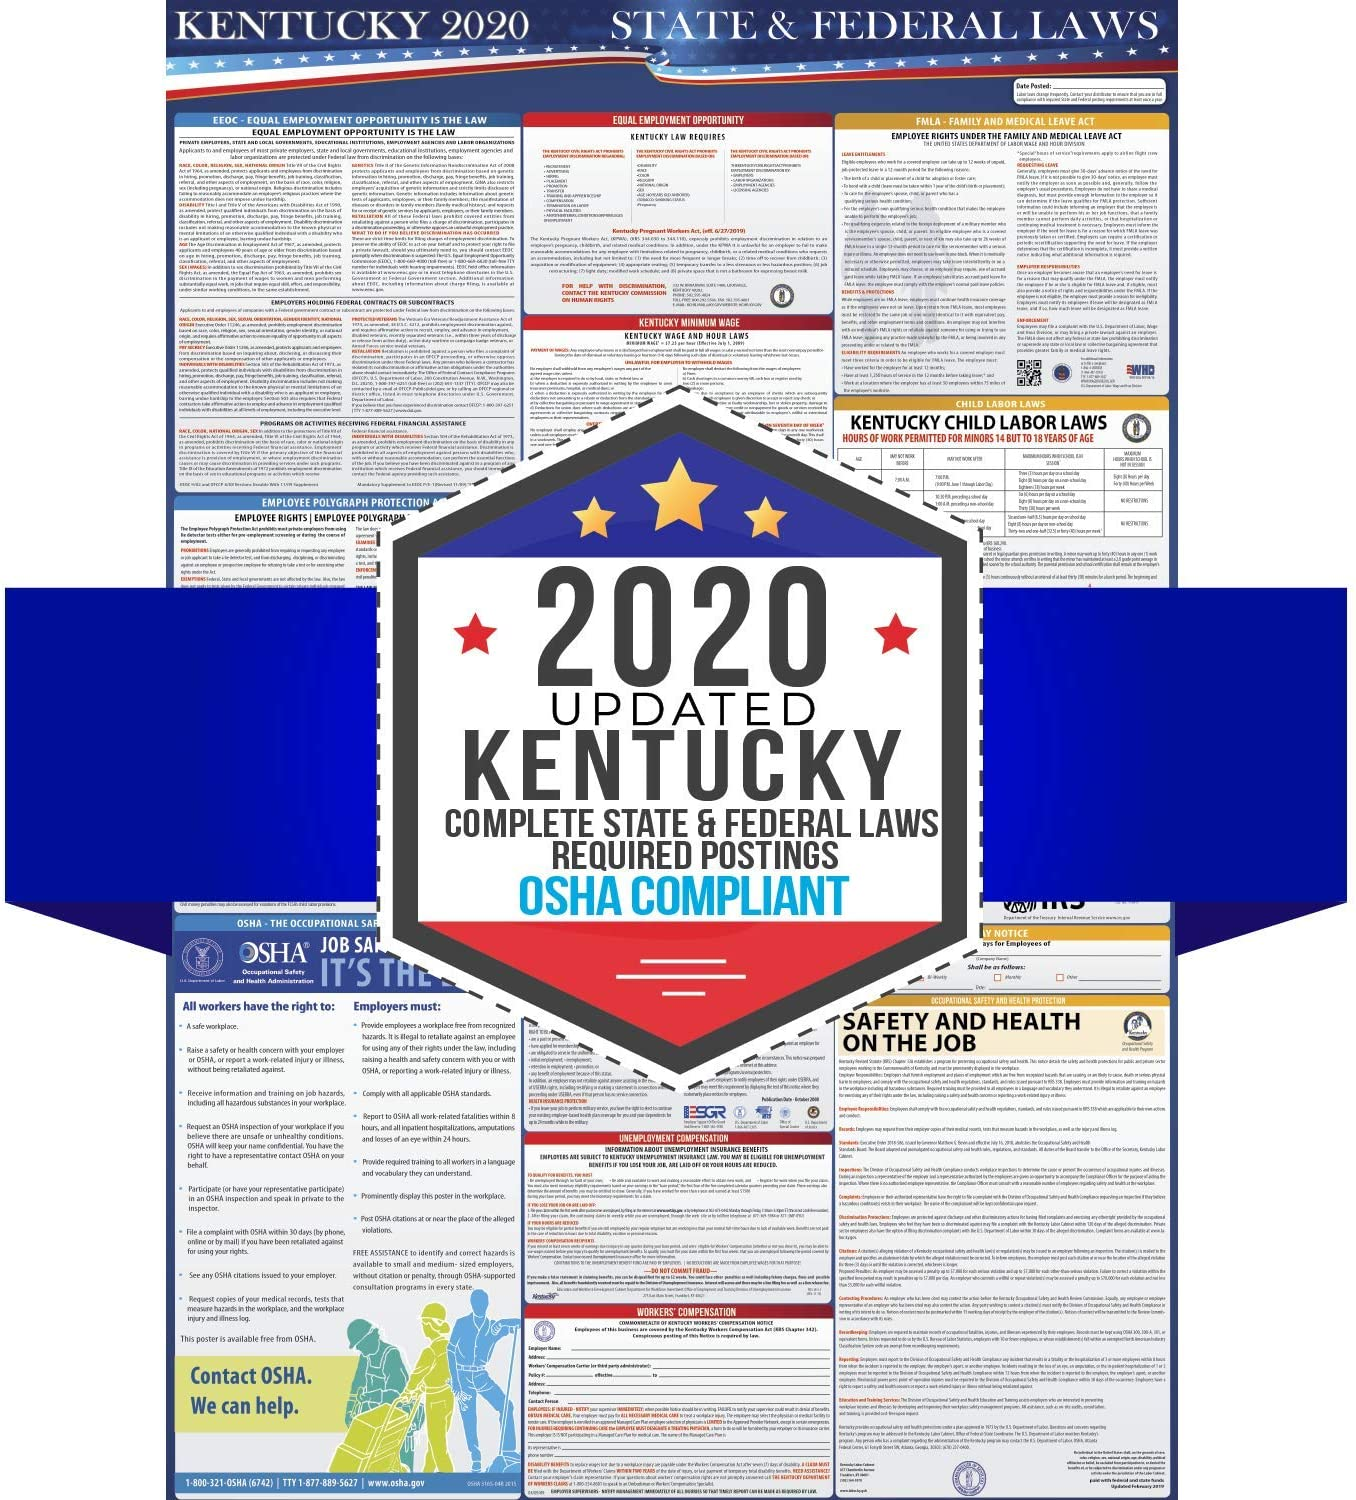 2020 Kentucky State and Federal Labor Laws Poster - OSHA Workplace Compliant 24